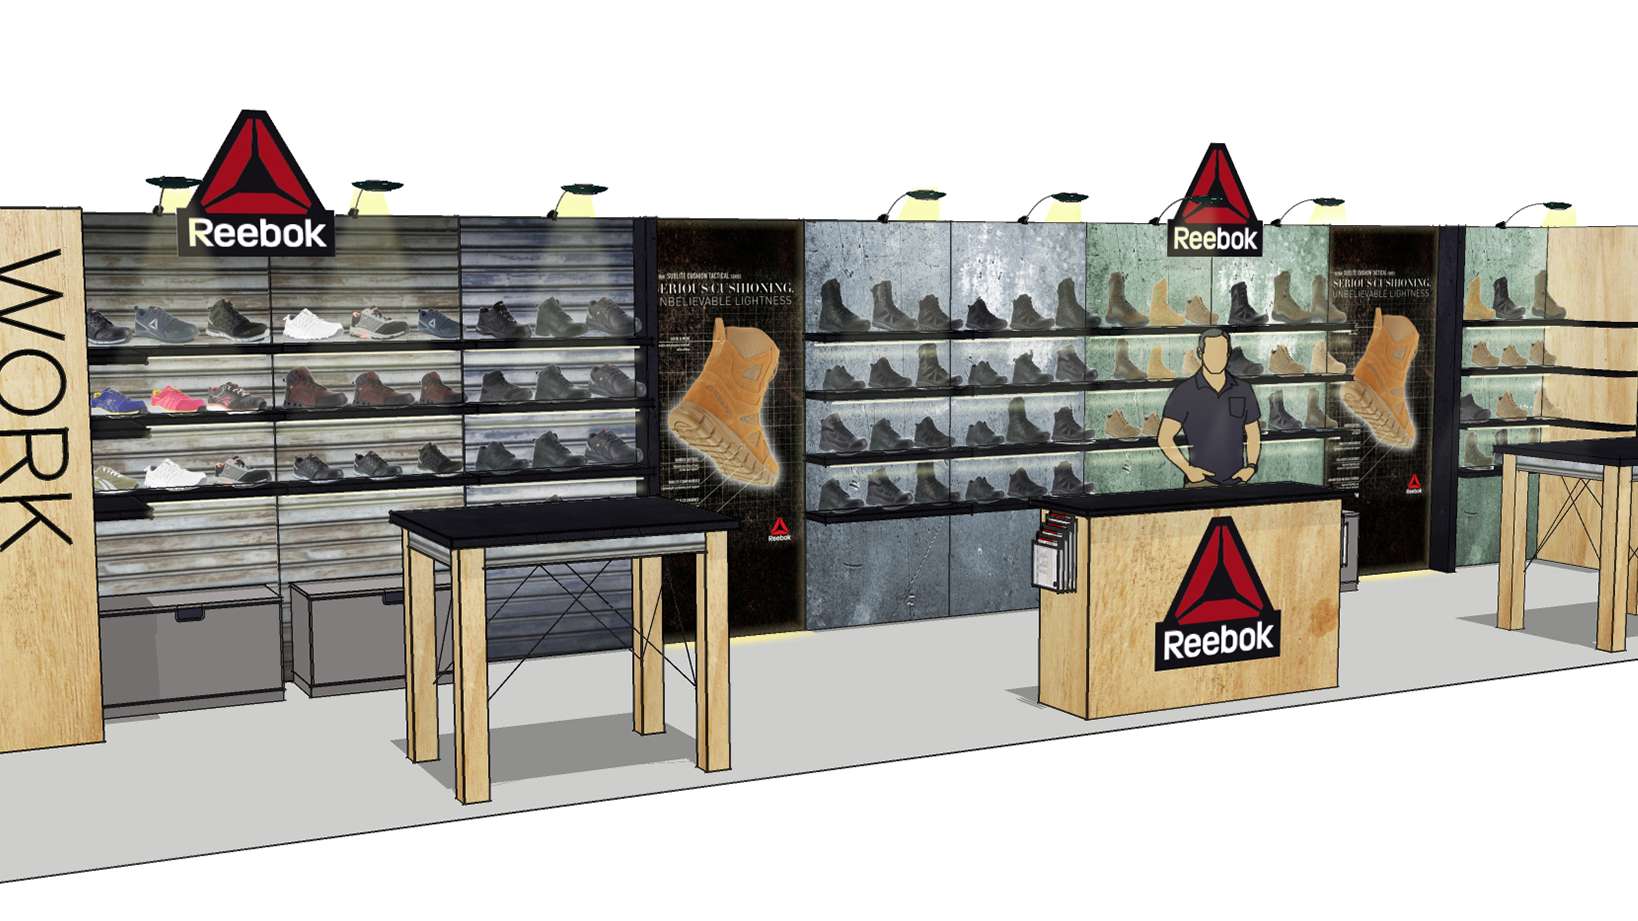 Reebok Warson Brands – Tradeshow Booth Design and 3D Renders